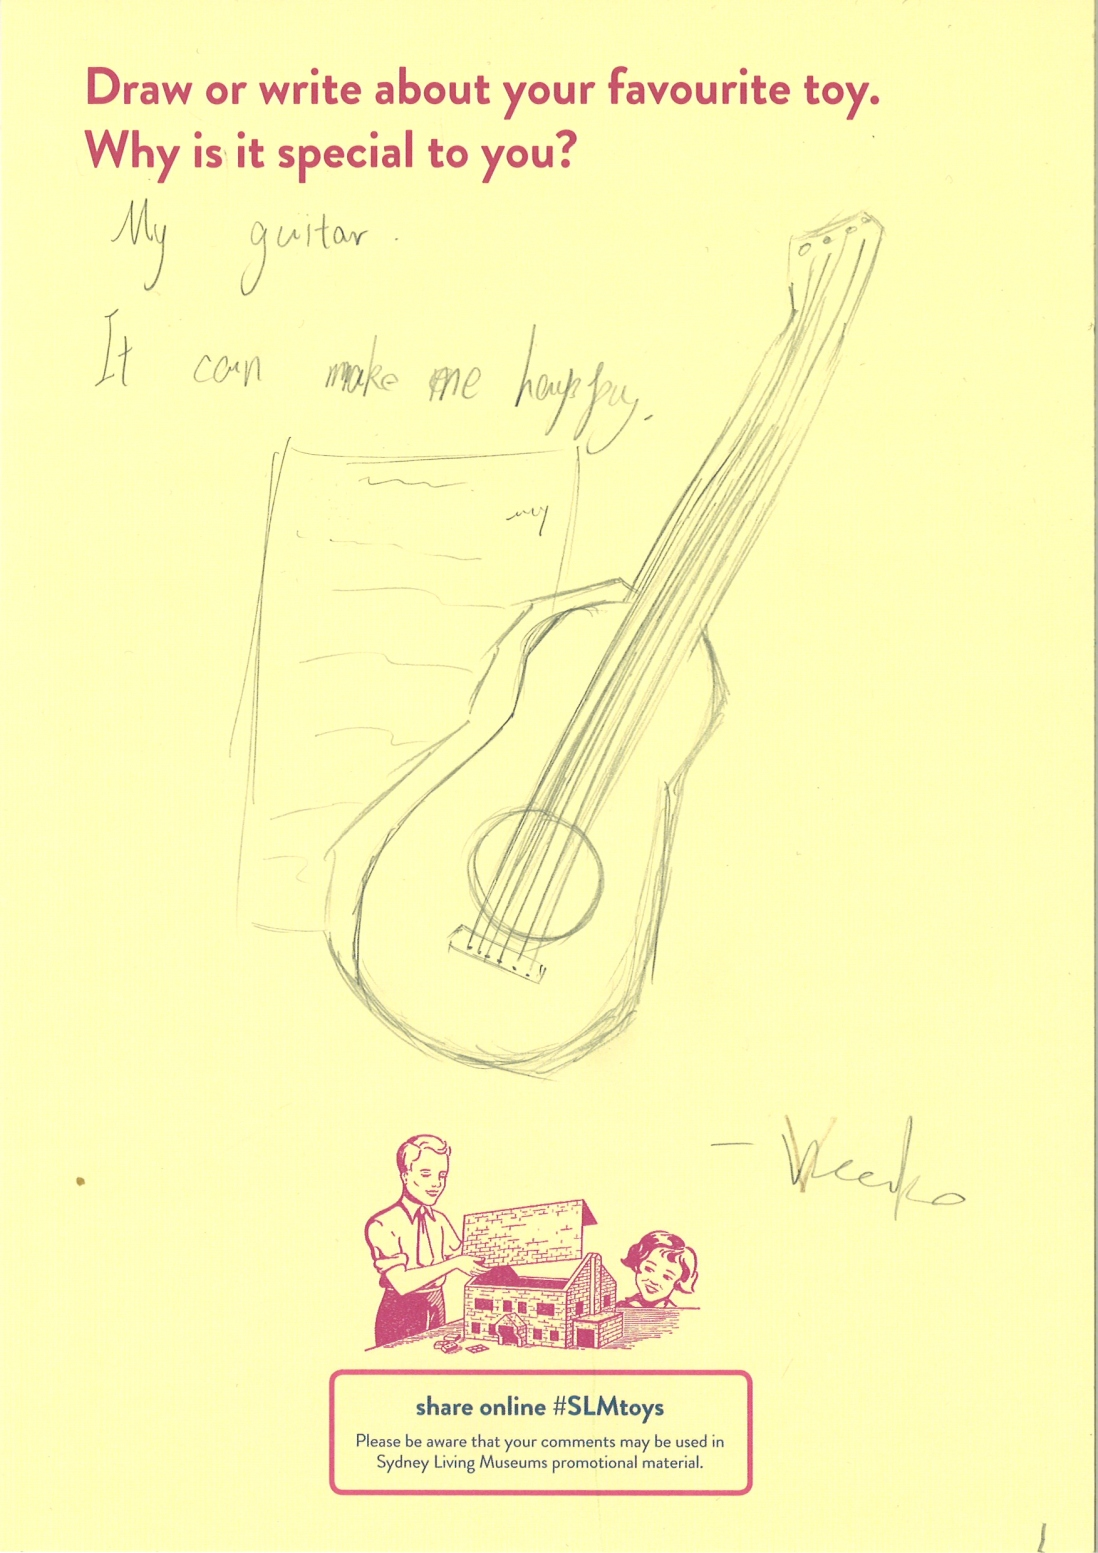 Drawing of a guitar and sheet music